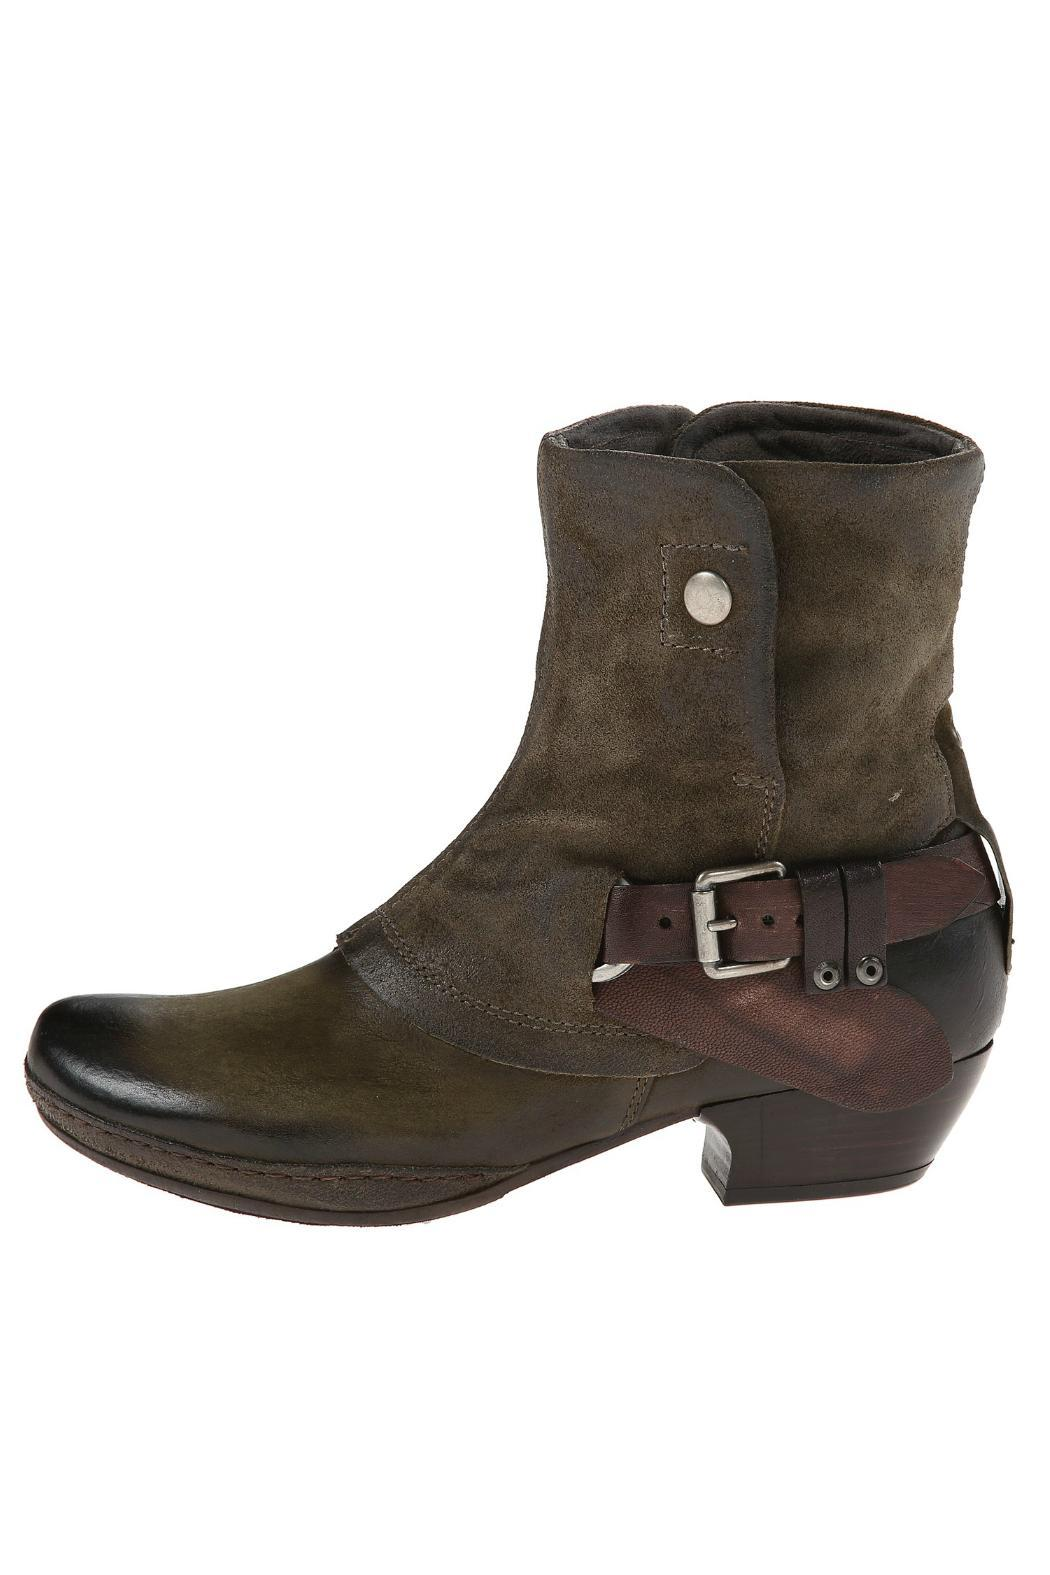 Miz Mooz Evelyn Boot From Seattle By Mi Shoes